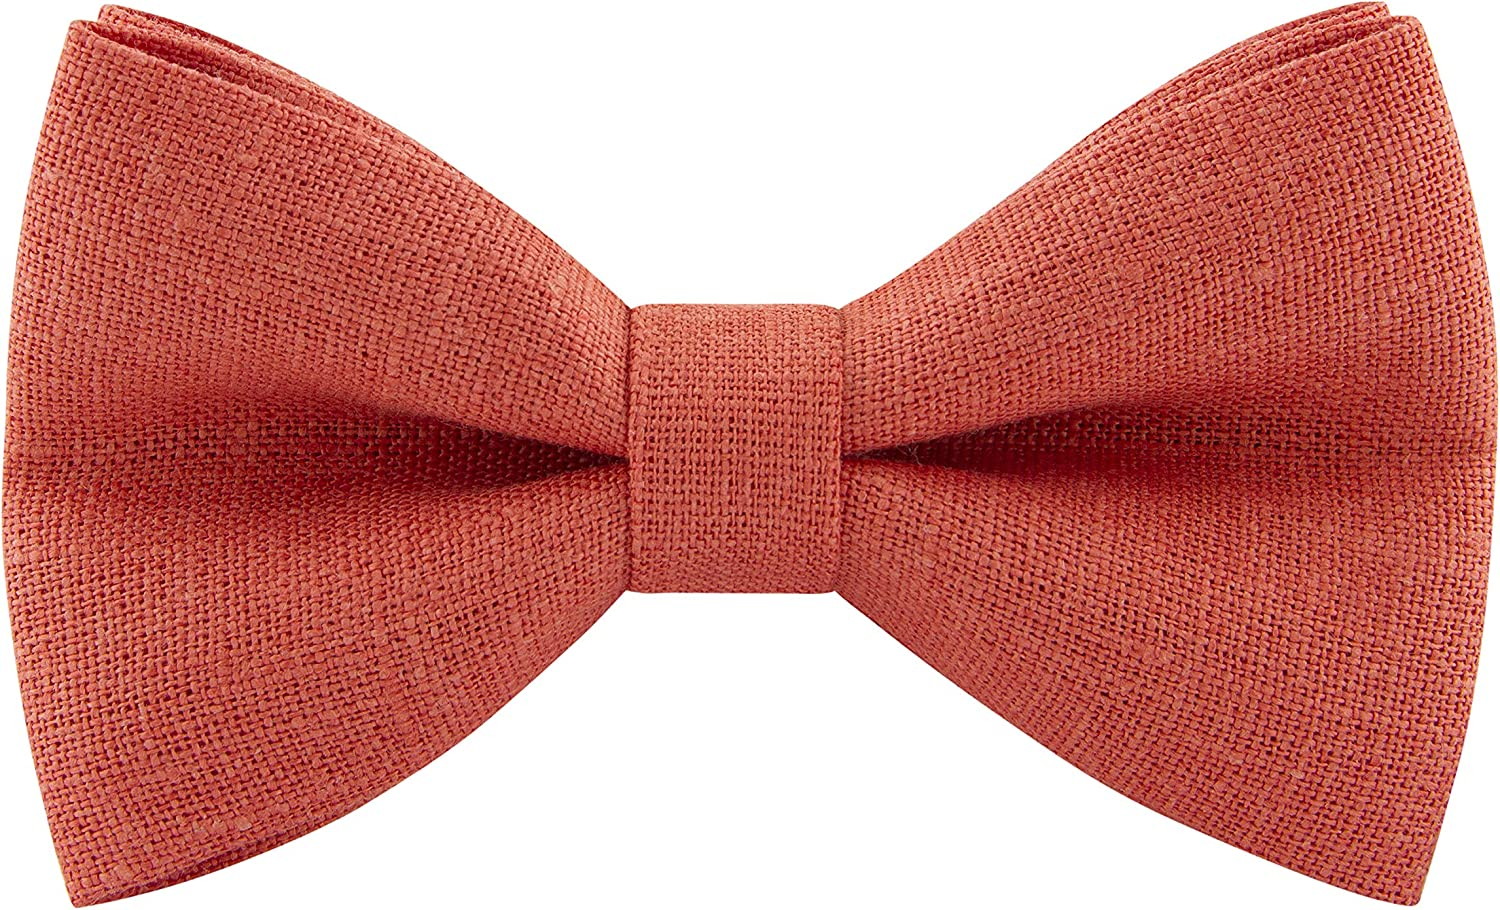 by Bow Tie House Small, Blush Pink Linen Classic Pre-Tied Bow Tie Formal Solid Tuxedo